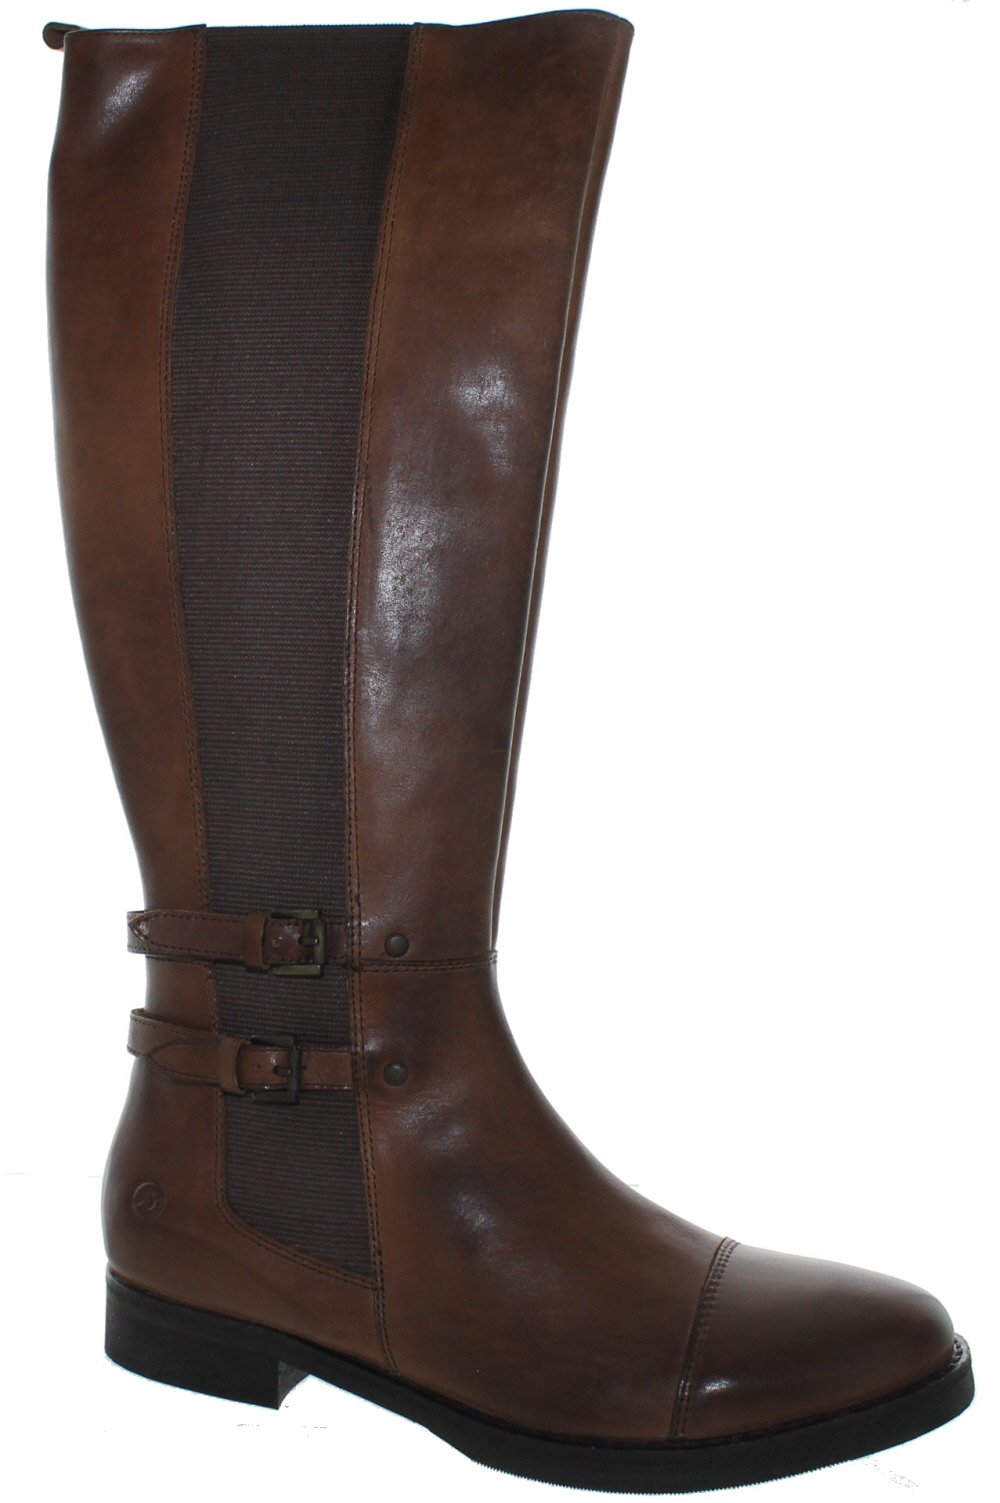 Bronx By Diba True Women's Loop Hole Tall Leather Boots Brown (36.0 EU   6.0M US) by